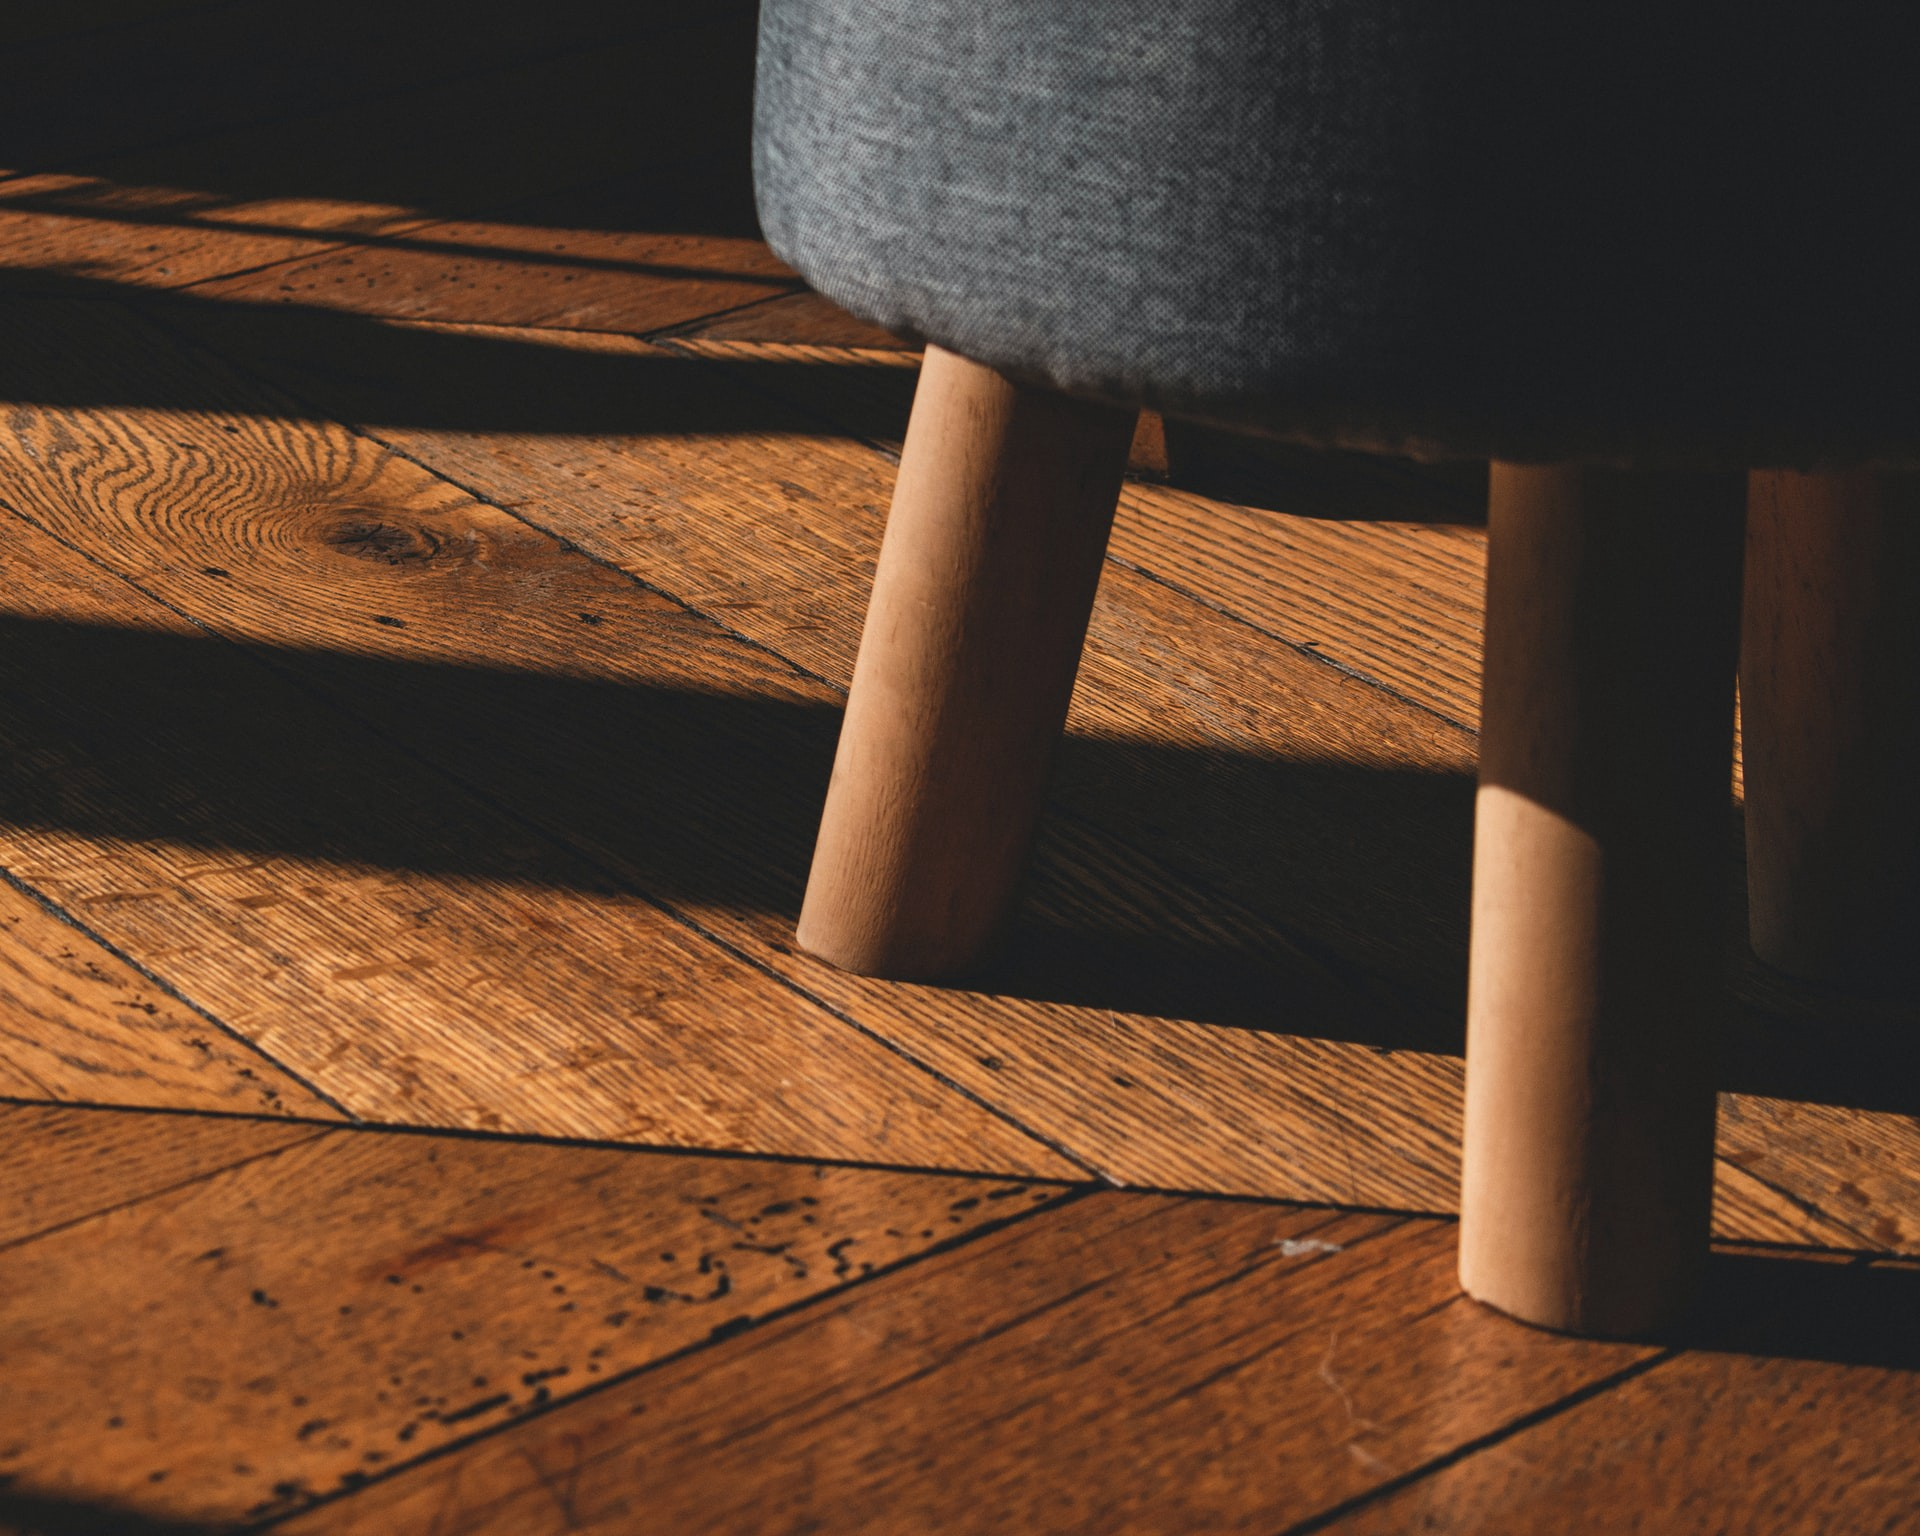 Chair on wooden flooring